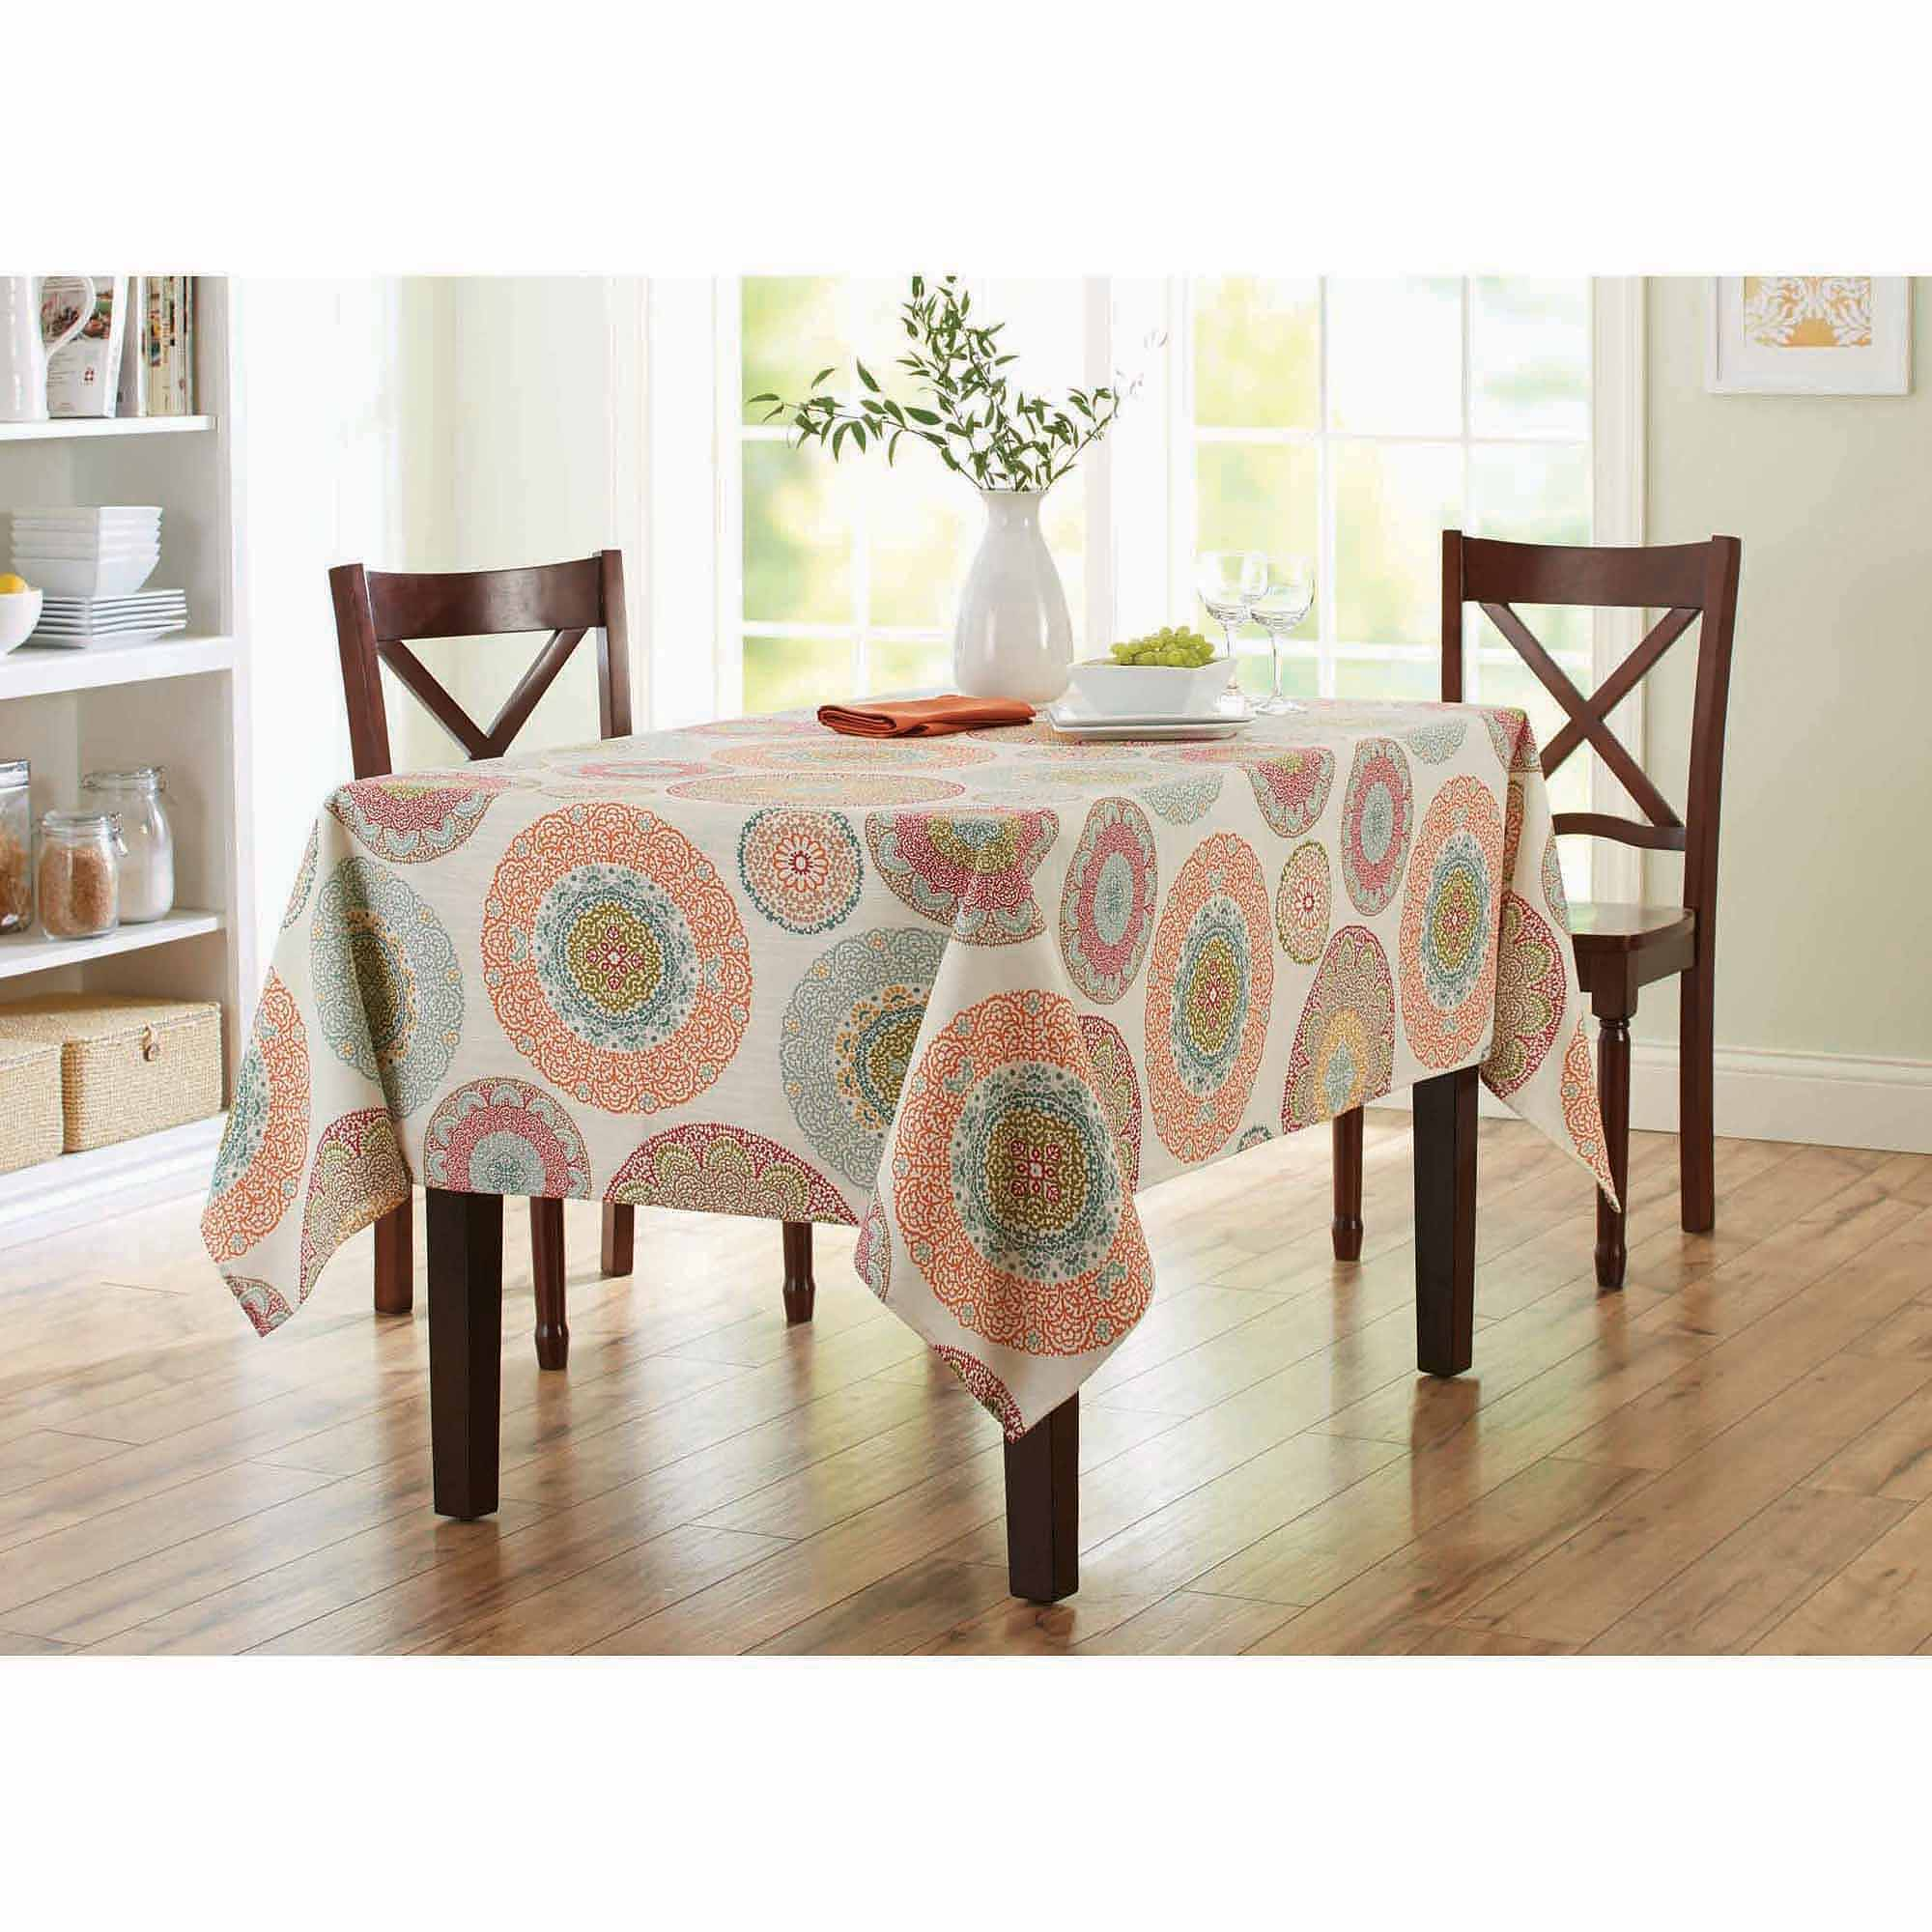 Better Homes And Gardens Lace Medallion Tablecloth Available In Multiple Sizes Com